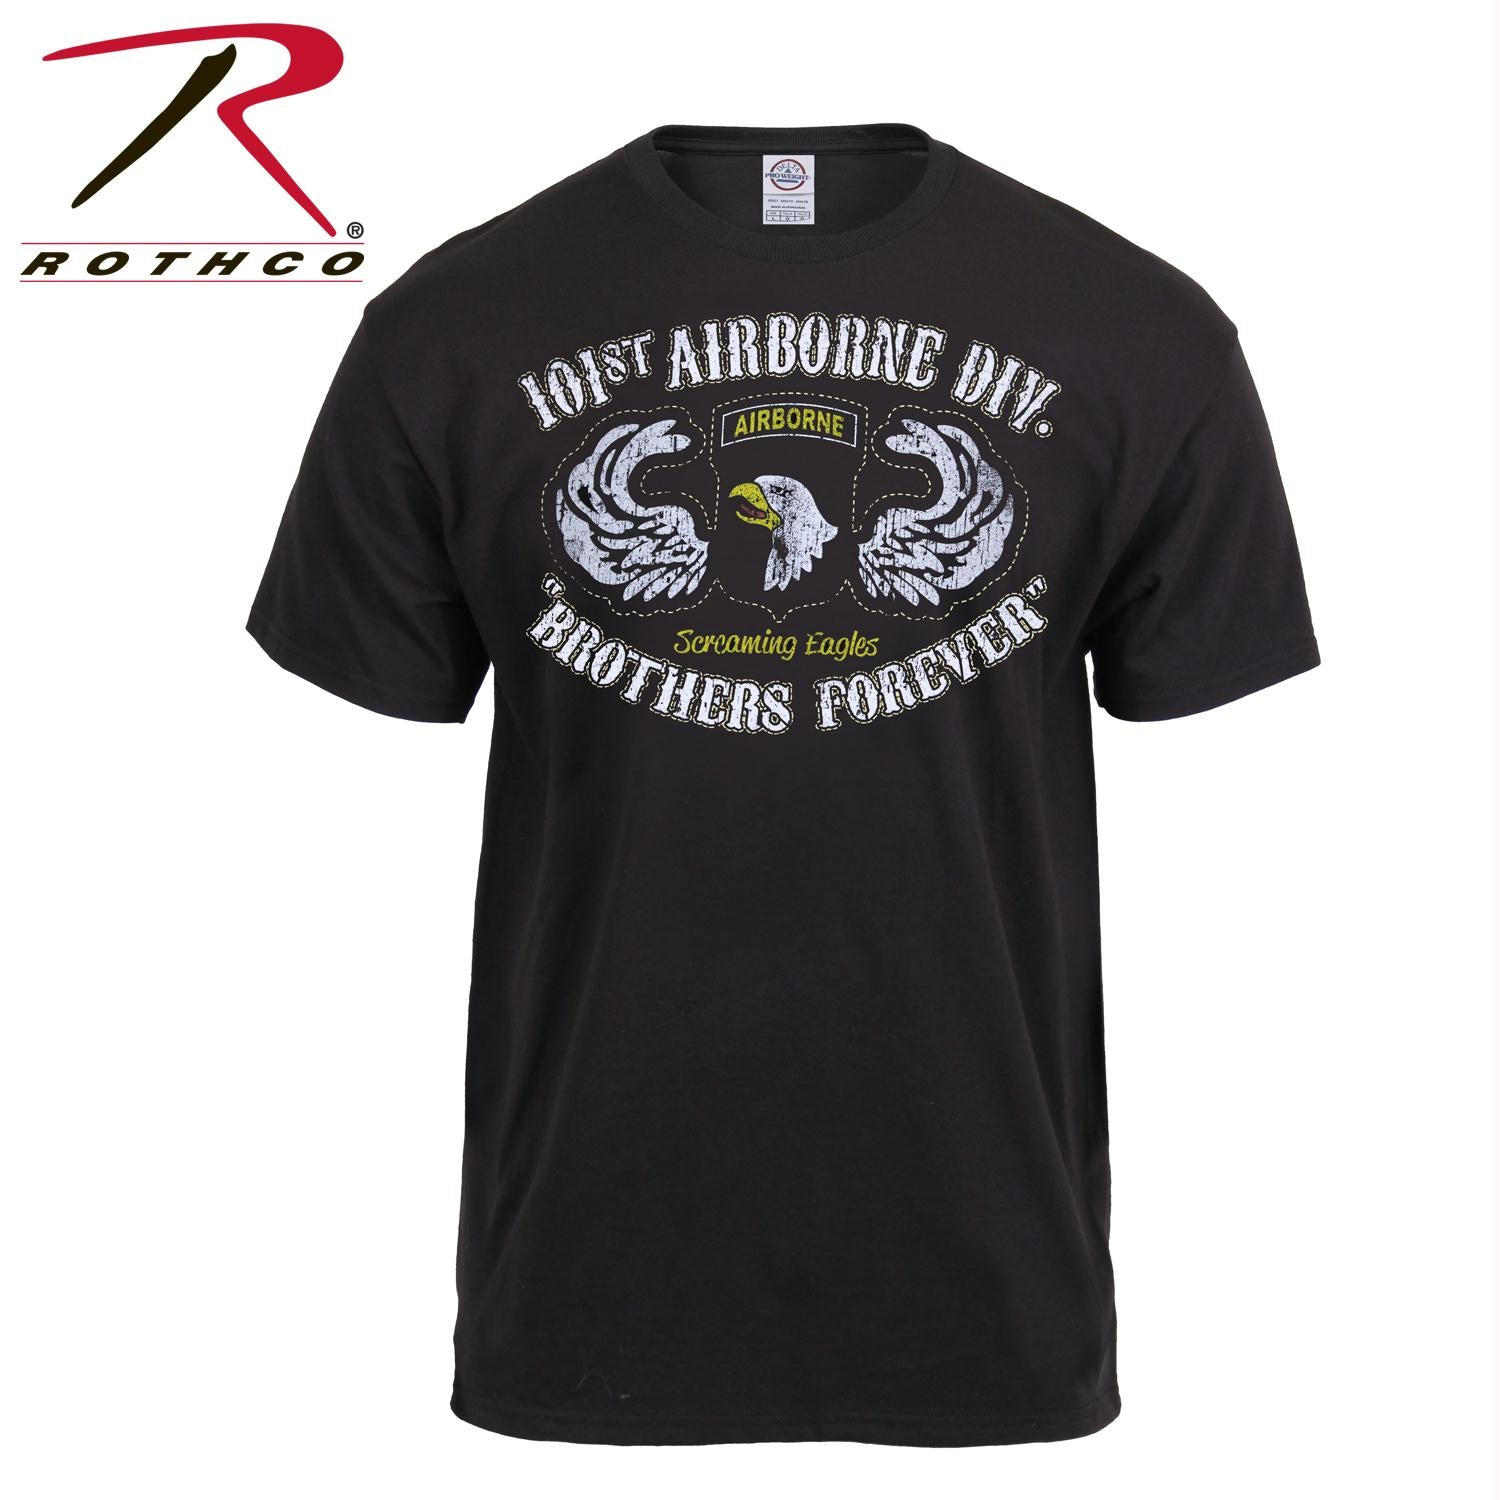 Black Ink Distressed 101st Airborne Division T-Shirt - XL